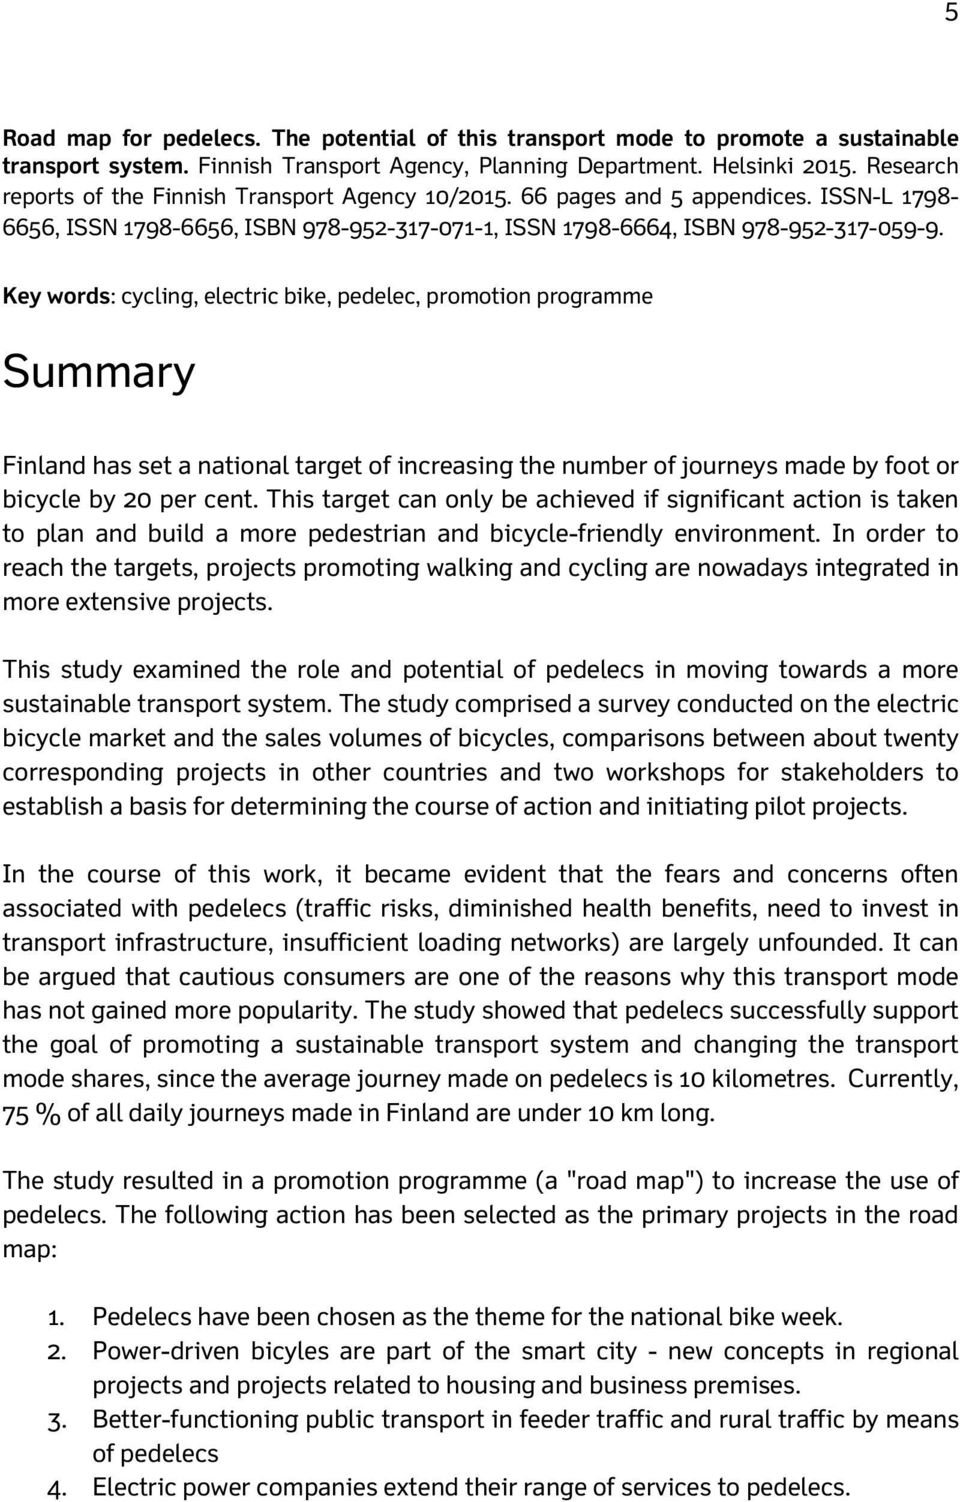 Key words: cycling, electric bike, pedelec, promotion programme Summary Finland has set a national target of increasing the number of journeys made by foot or bicycle by 20 per cent.